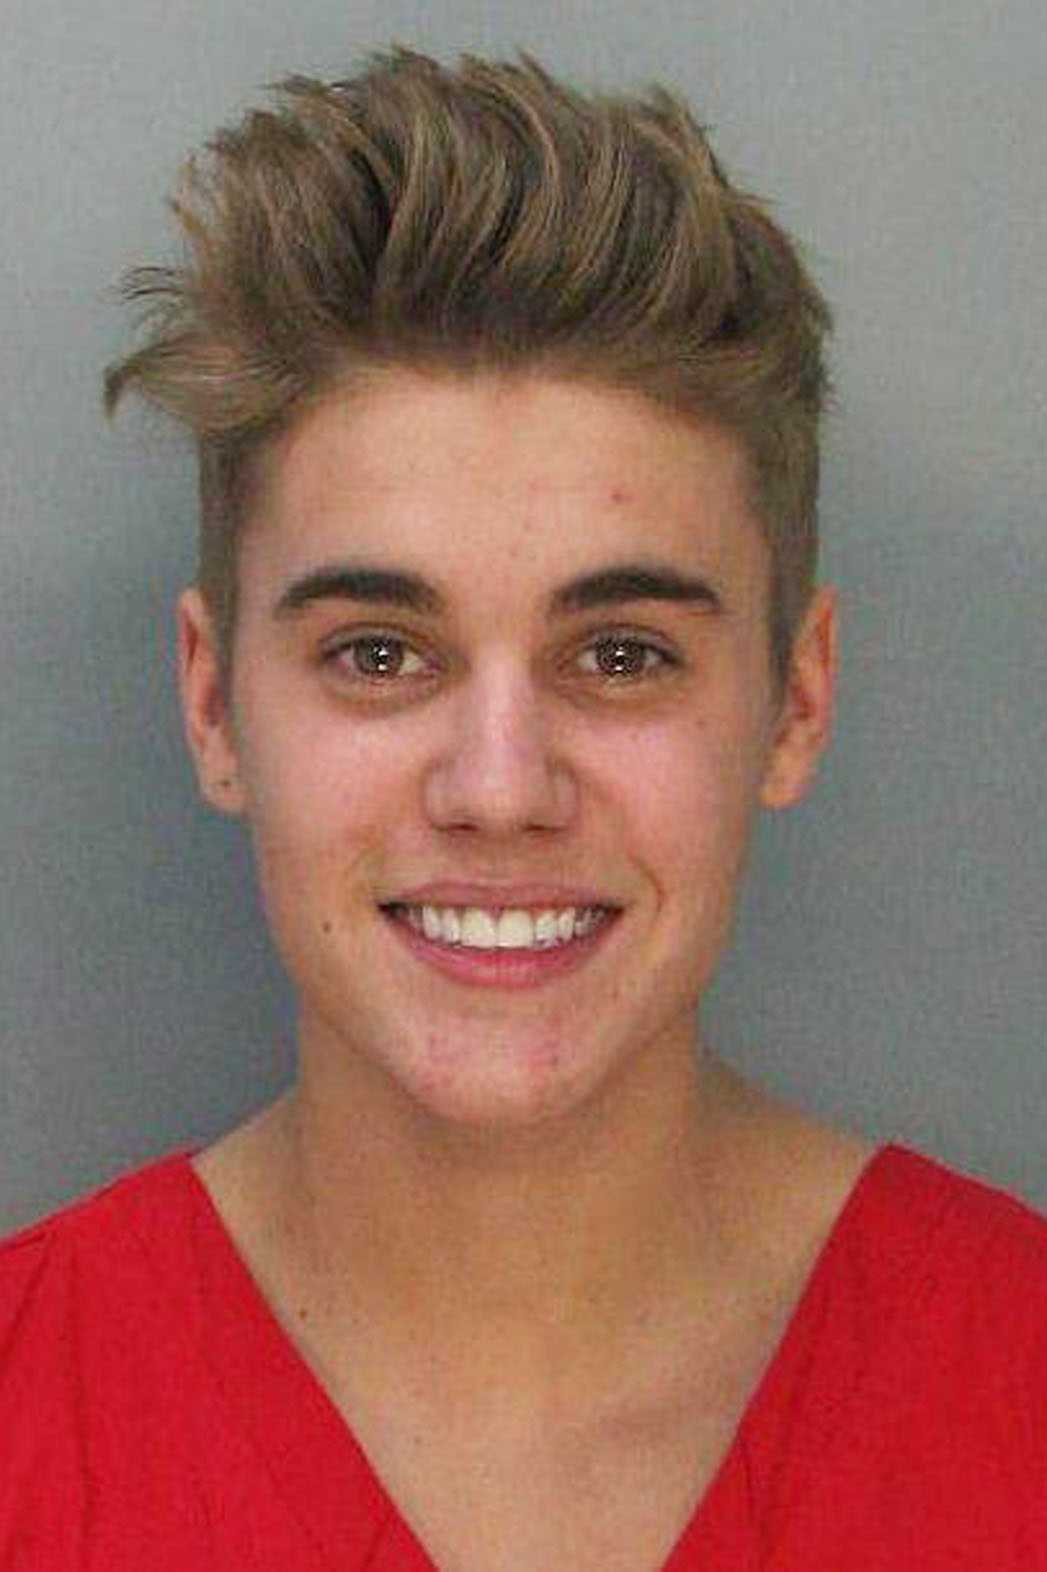 You Have The Right To...Urinate In Your Cell? Footage Of Justin Bieber's Night In Jail To Be Released